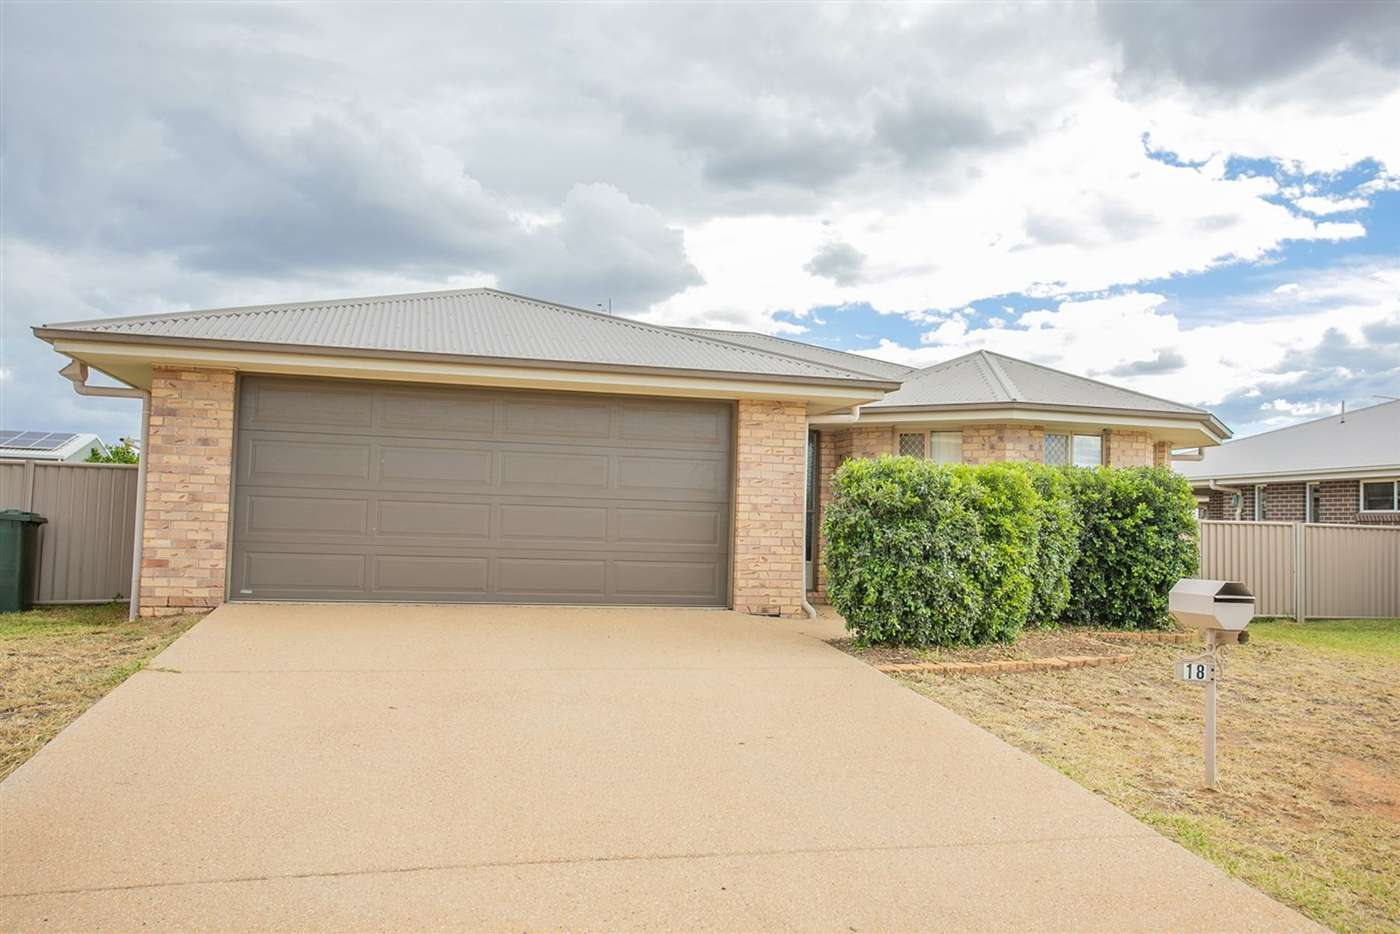 Main view of Homely house listing, 18 Sheridan Street, Chinchilla QLD 4413